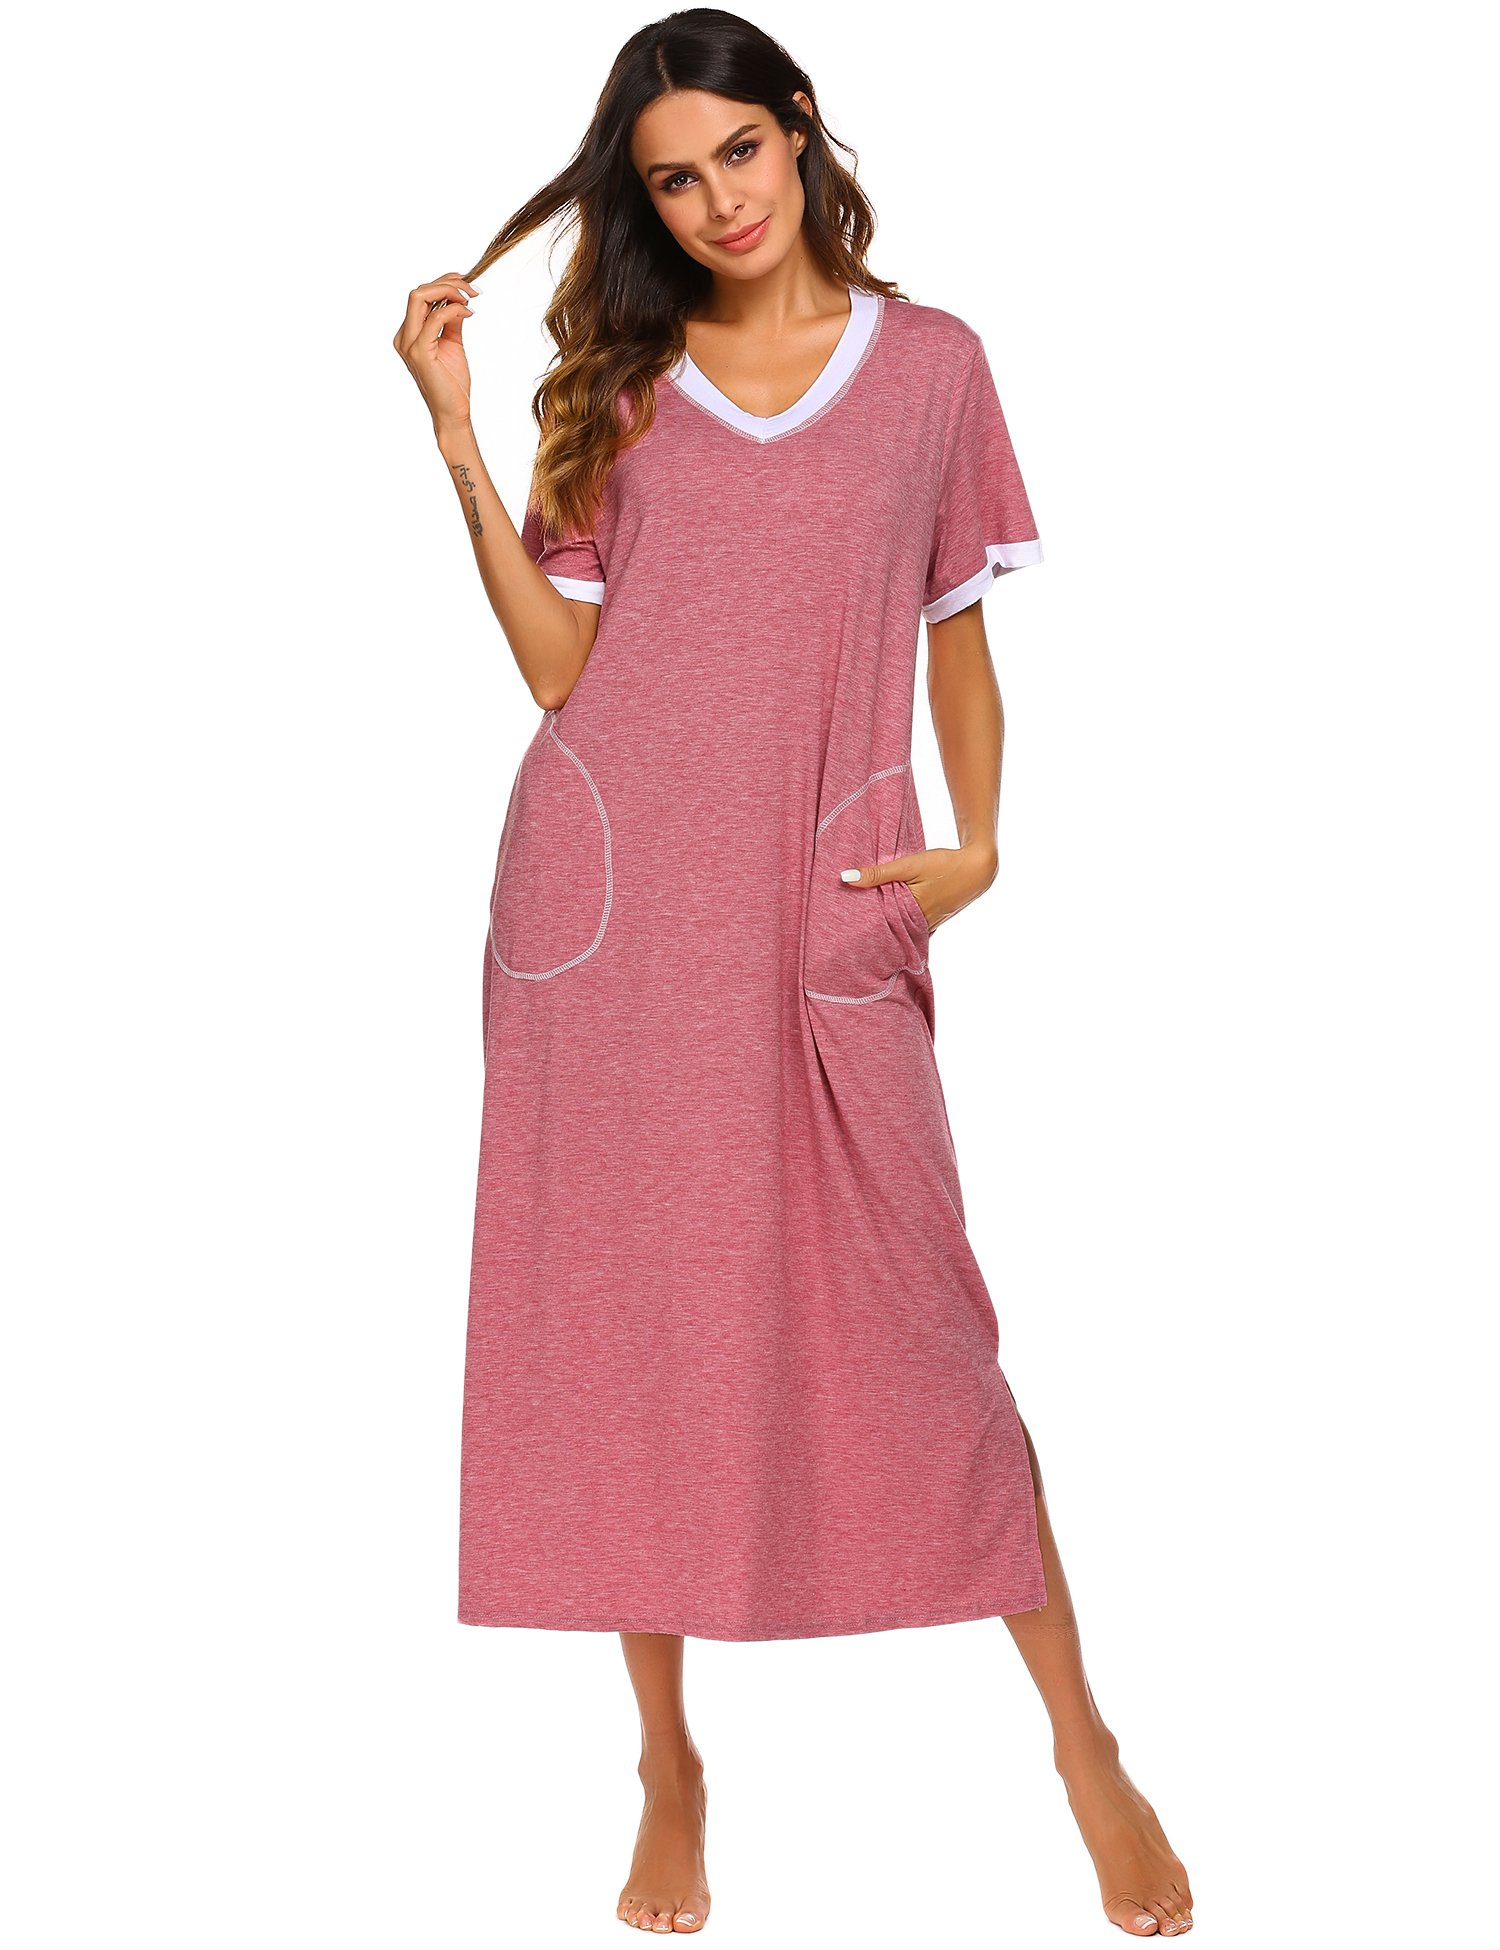 4c6cedc956 Ekouaer Loungewear Long Nightgown Women s Ultra-Soft Nightshirt Full Length  Sleepwear with Pocket product image